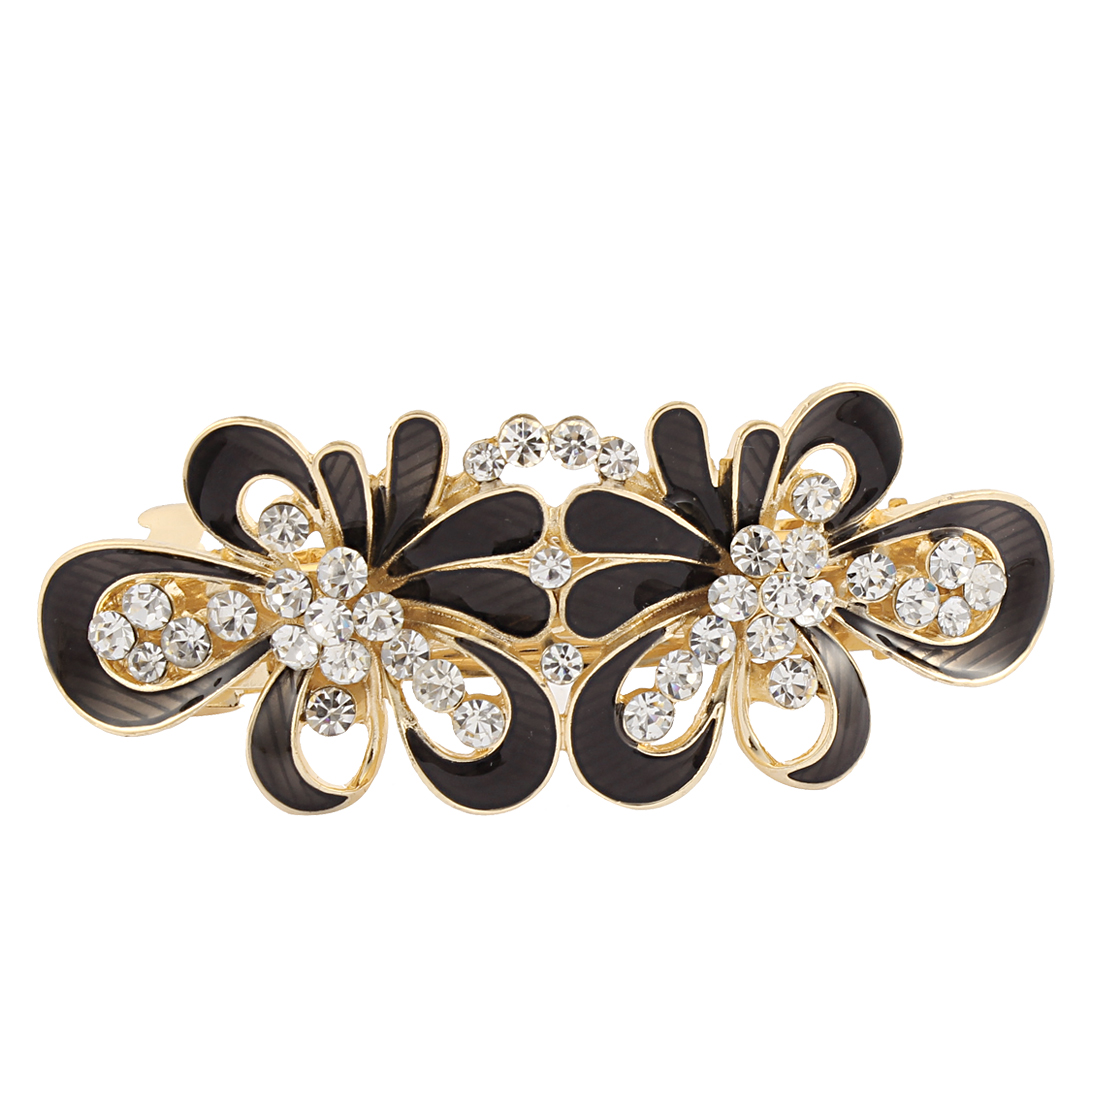 Women Rhinestone Detail Floral Shape Spring Loaded Hair Barrette Clip